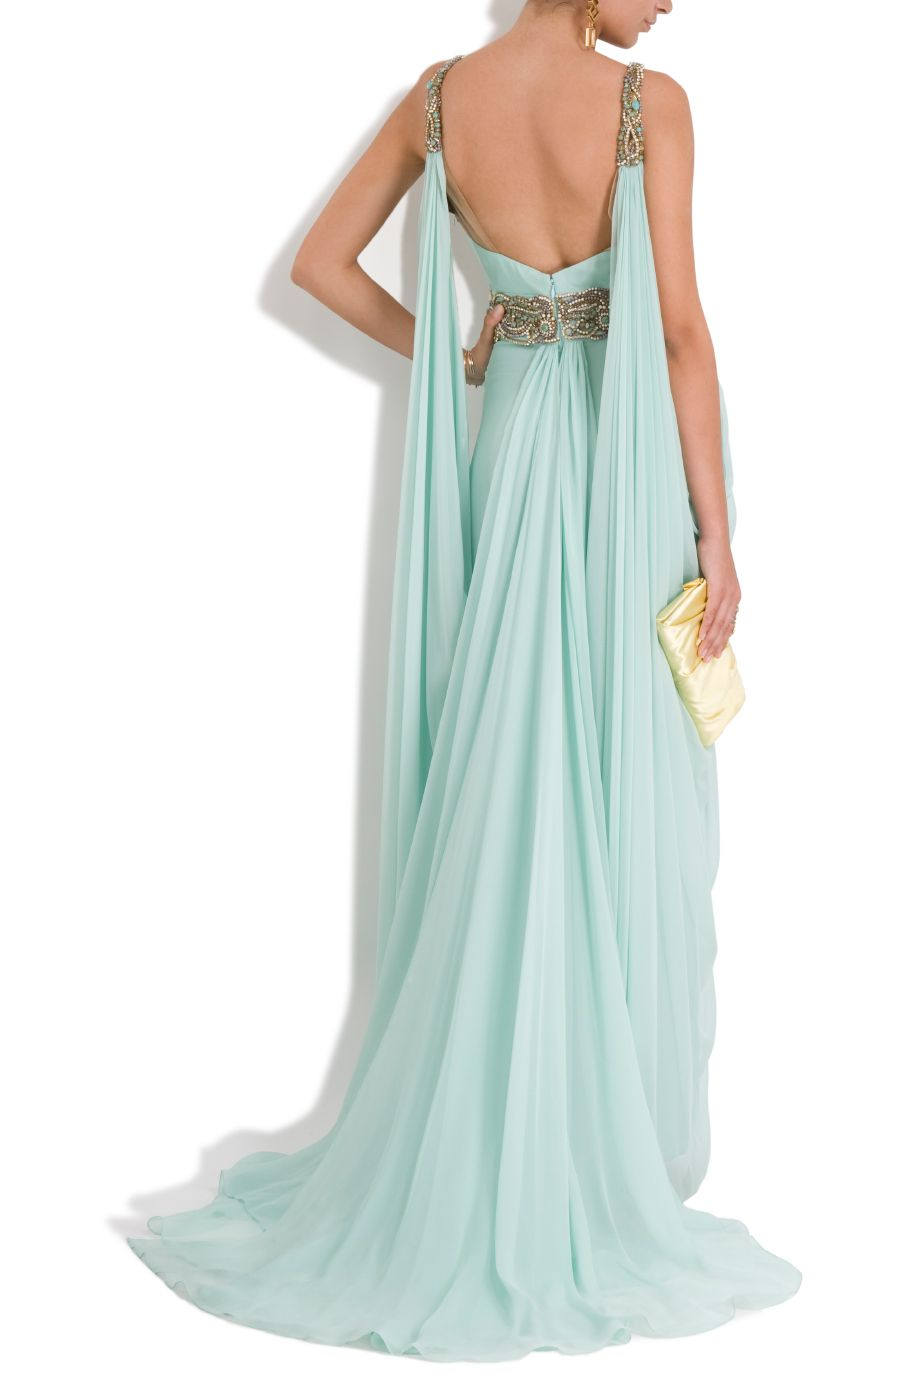 Women 39 s blue chiffon embellished grecian gown grecian for Grecian chiffon wedding dress